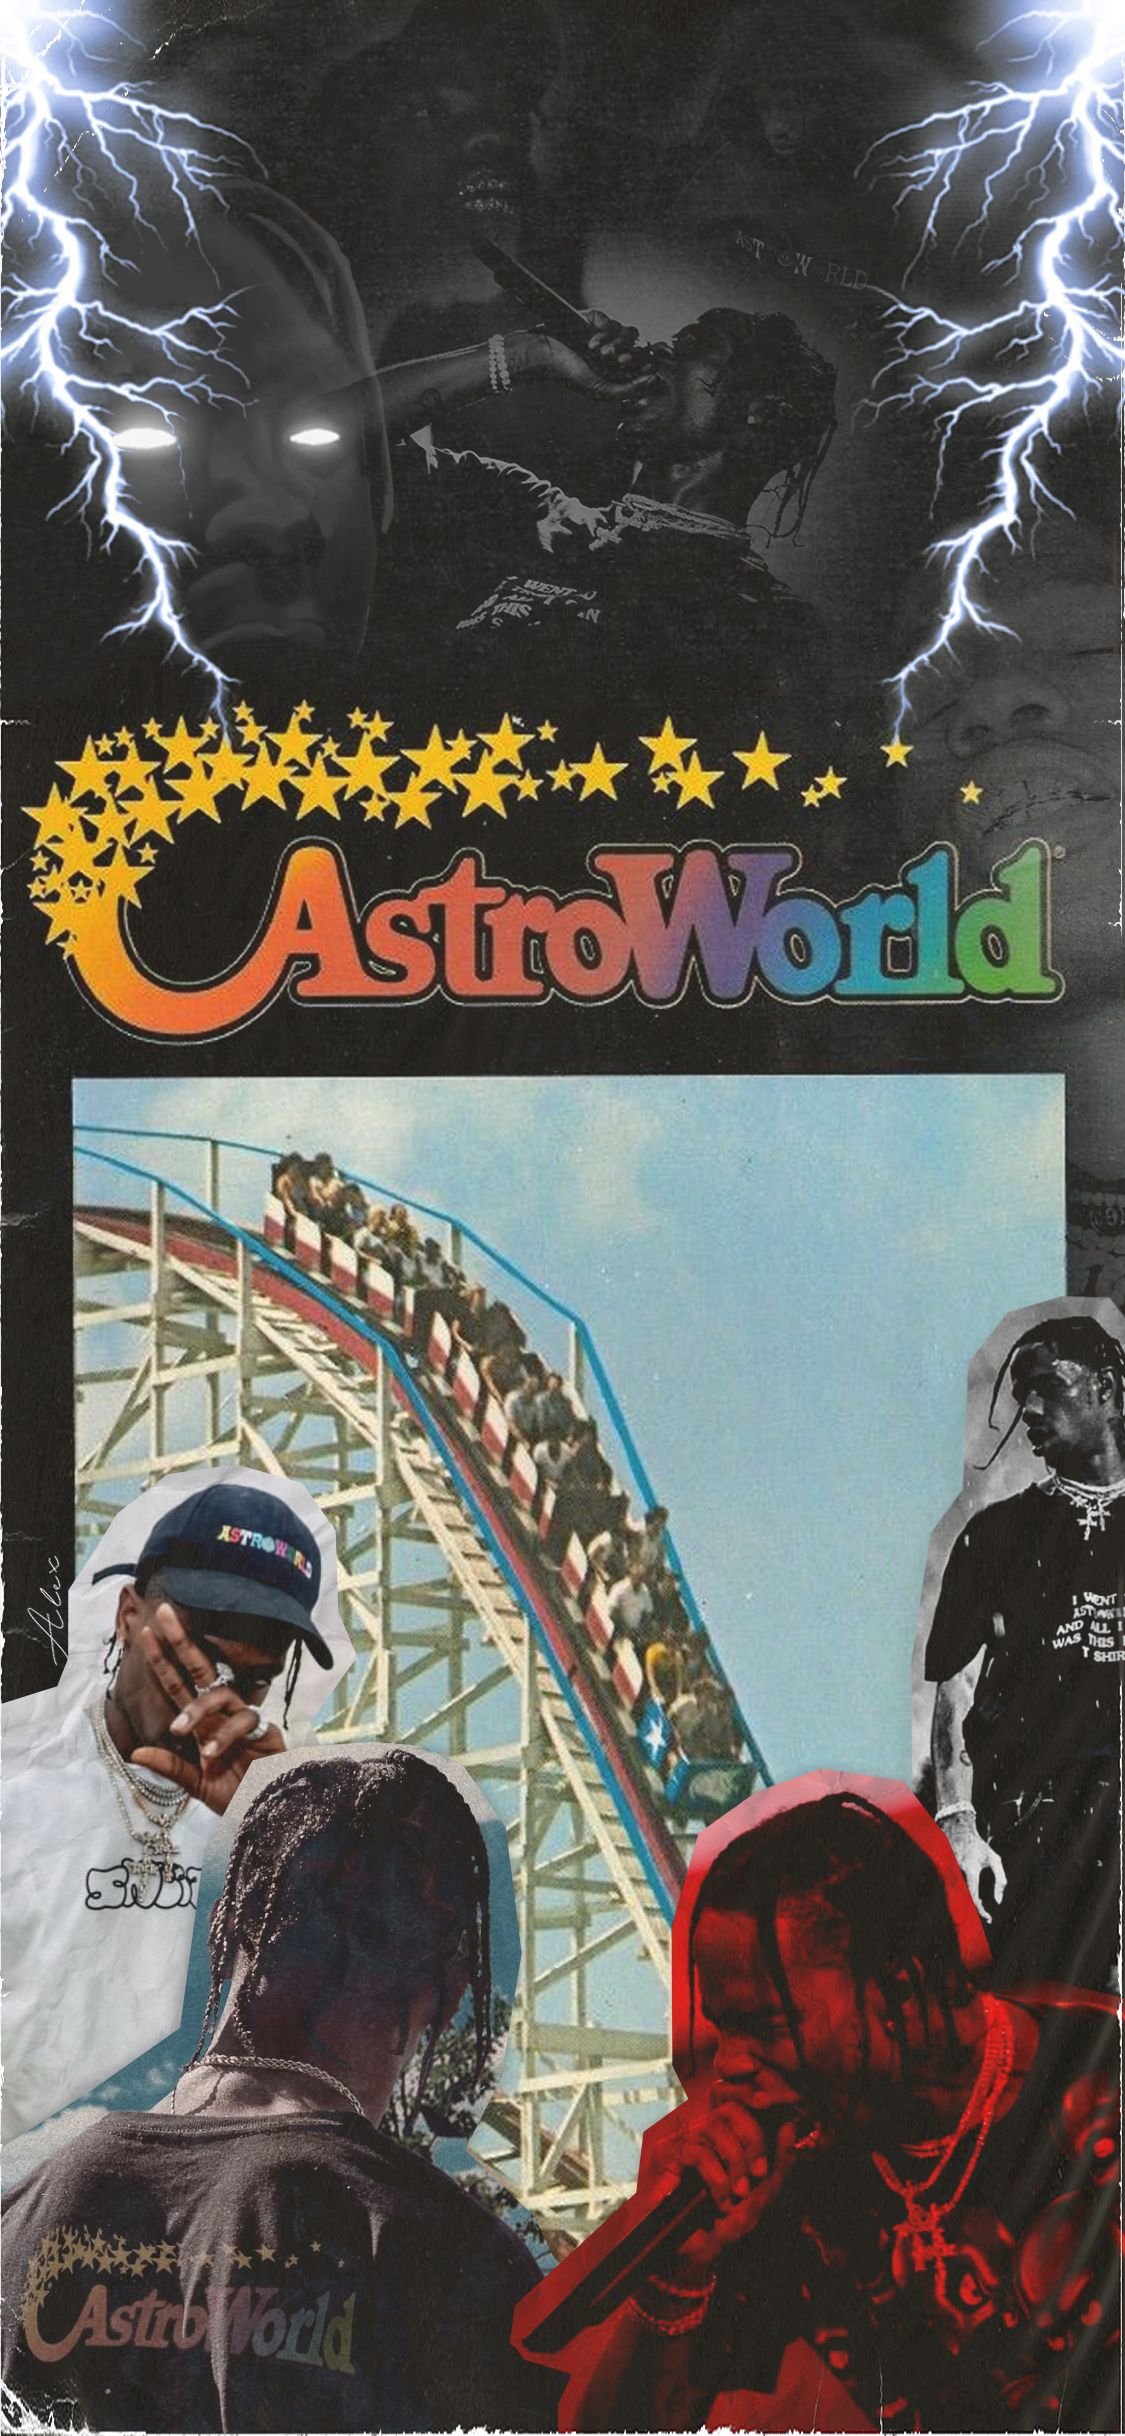 Travis Scott Astroworld Iphone Wallpaper Travis Scott Wallpapers Travis Scott Iphone Wallpaper Iphone Wallpaper Vintage